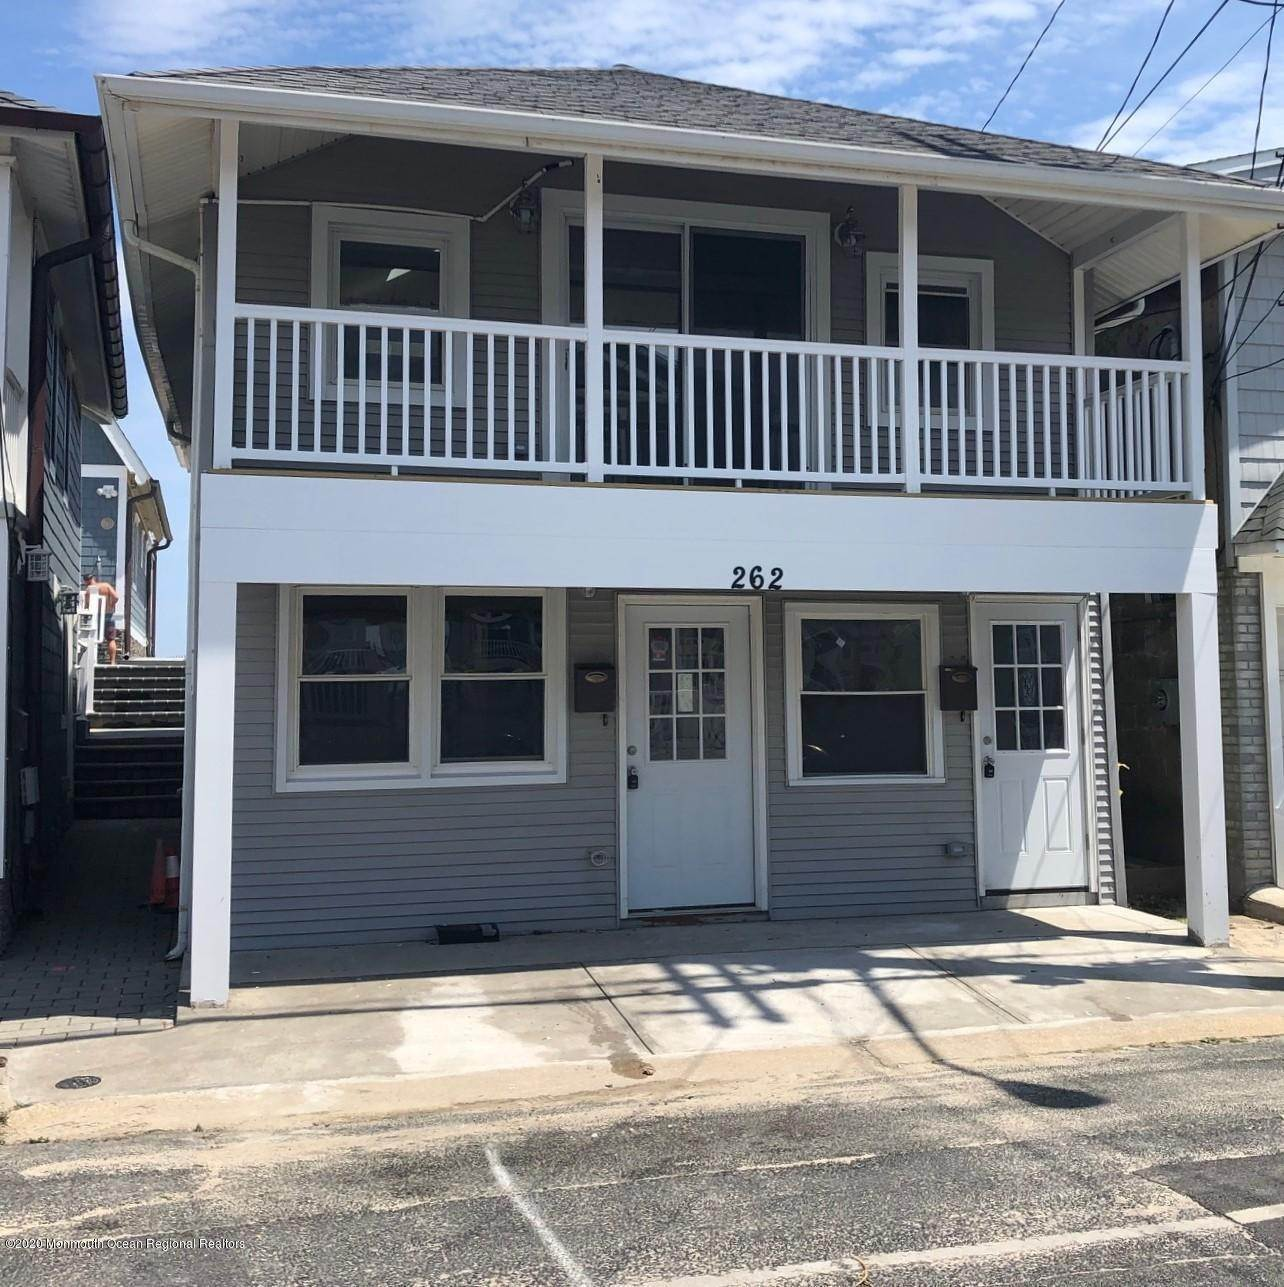 Residence/Apartment for Rent at 262 1st Avenue Manasquan, New Jersey,08736 United States